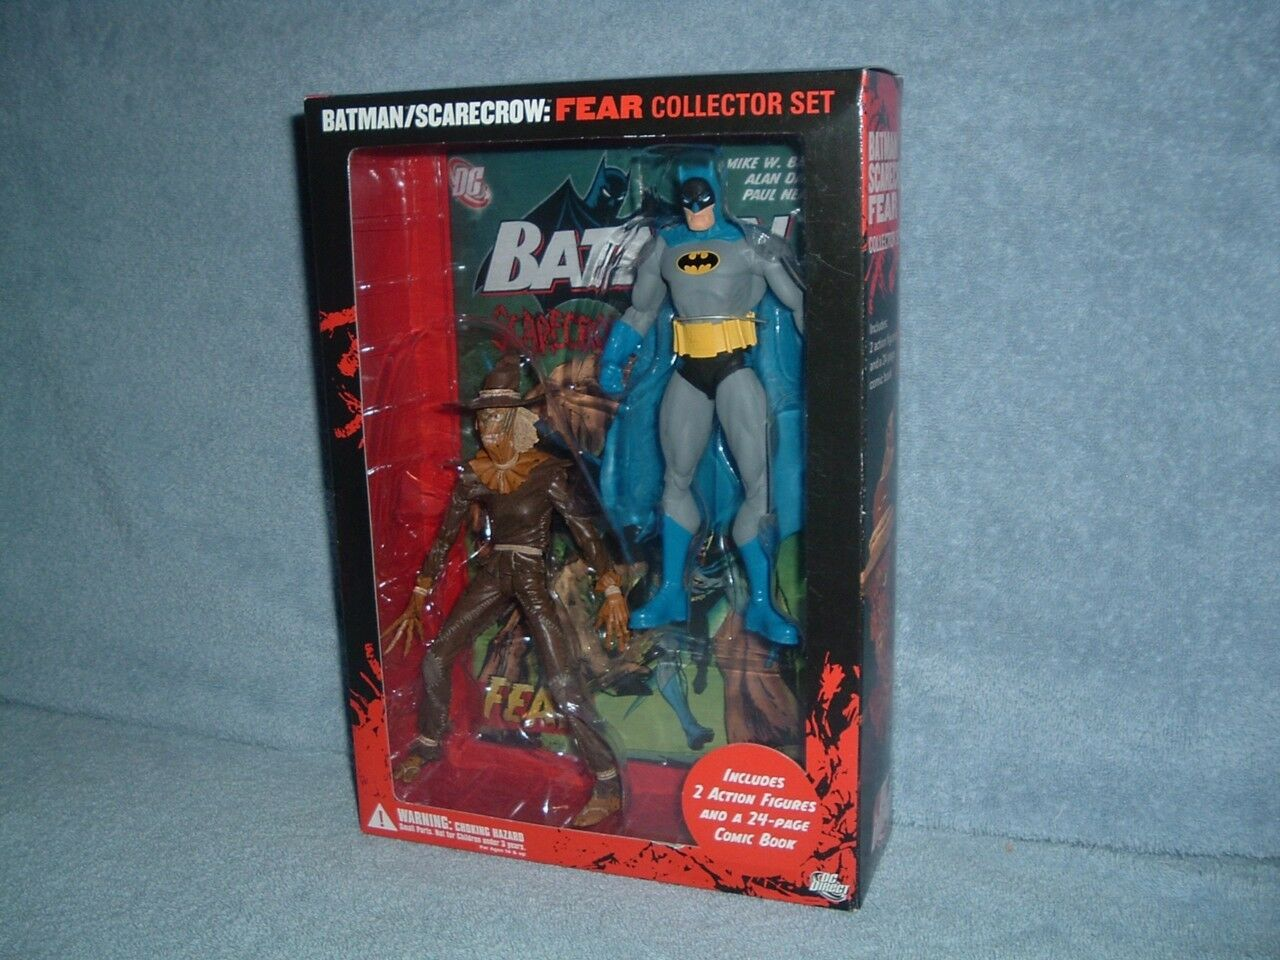 BATMAN SCARECROW Fear Collector Set 7